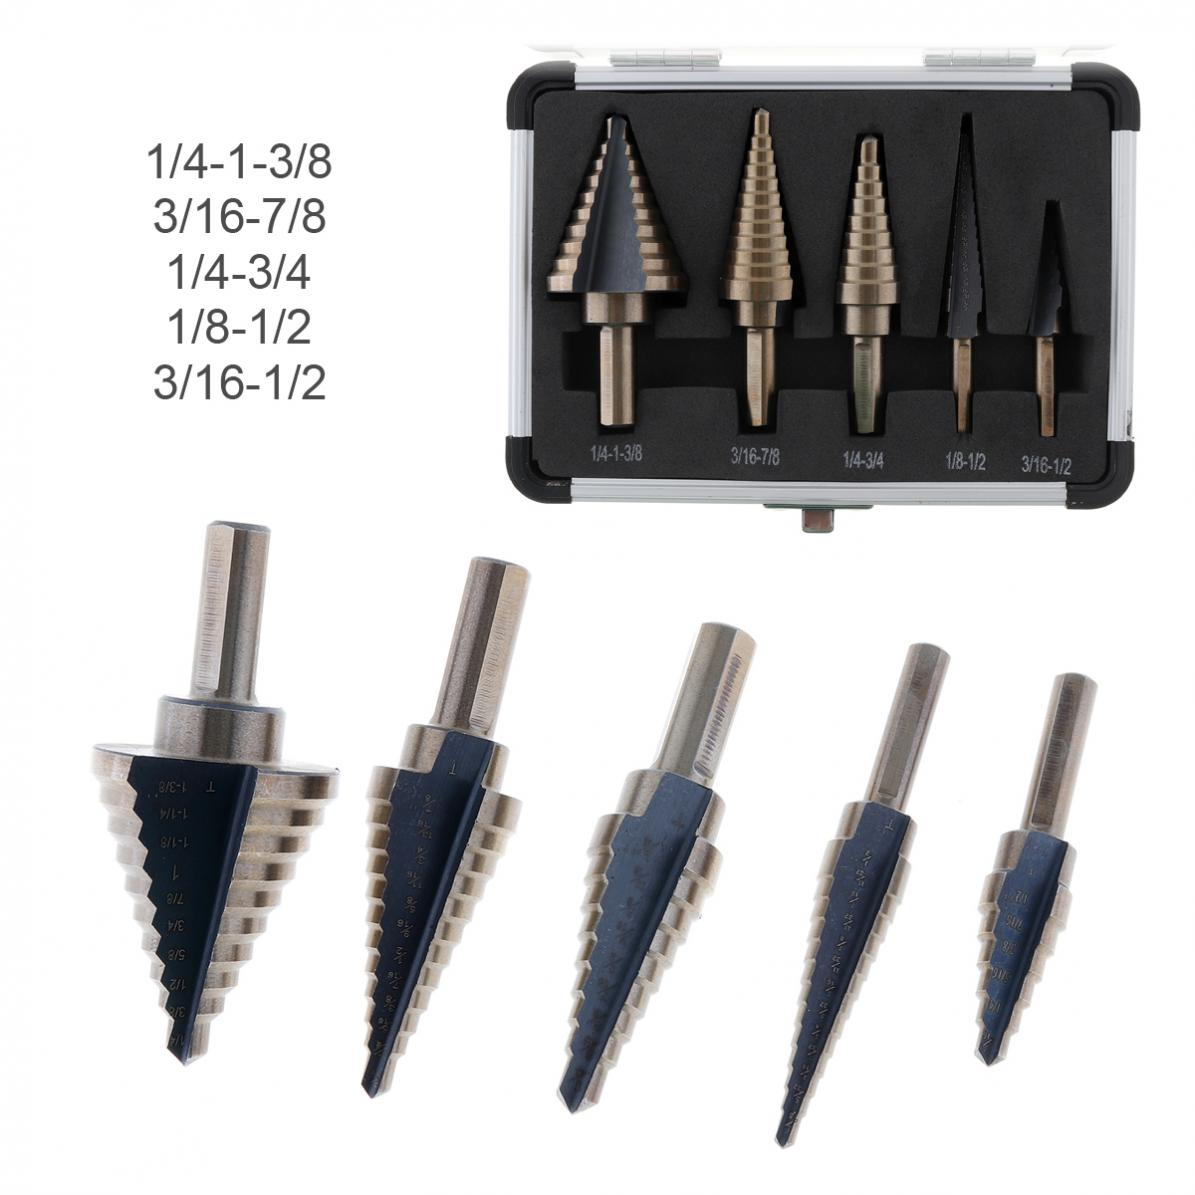 5pcs HSS Steel Step Drill Bit Set Cone Spiral Grooved Drill Bits Multiple Hole of 1/4-1-3/8 3/16-7/8 1/4-3/4 1/8-1/2 3/16-1/2 шкаф купе евростиль патриция 2